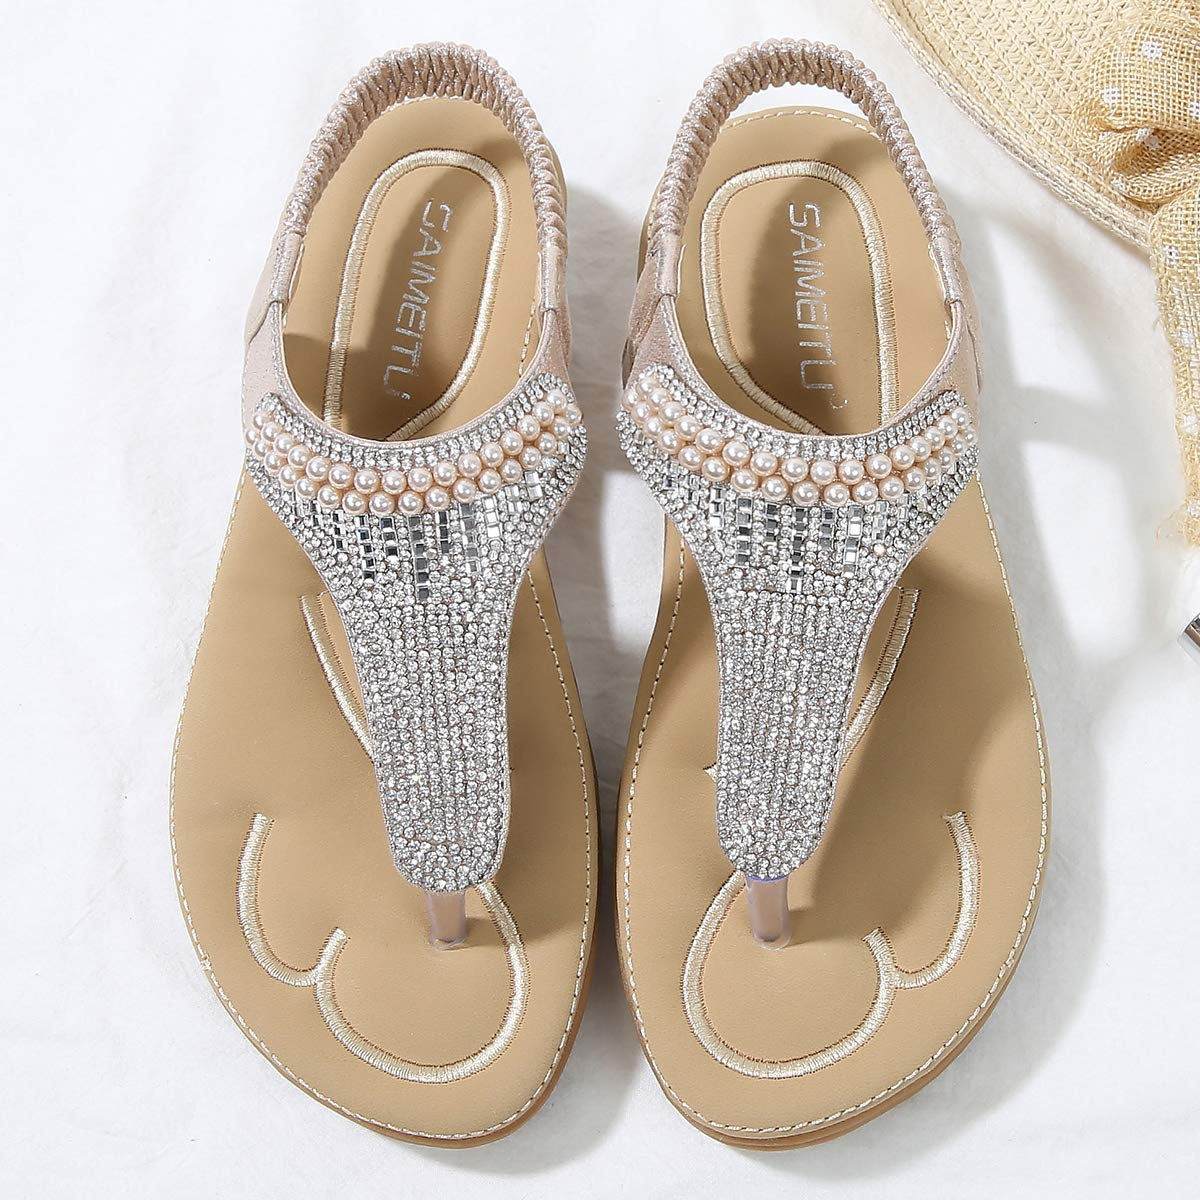 CHENXI Women Summer Rhinestone Beaded Flip Flops Flat Thong Sandals with Ankle Strap